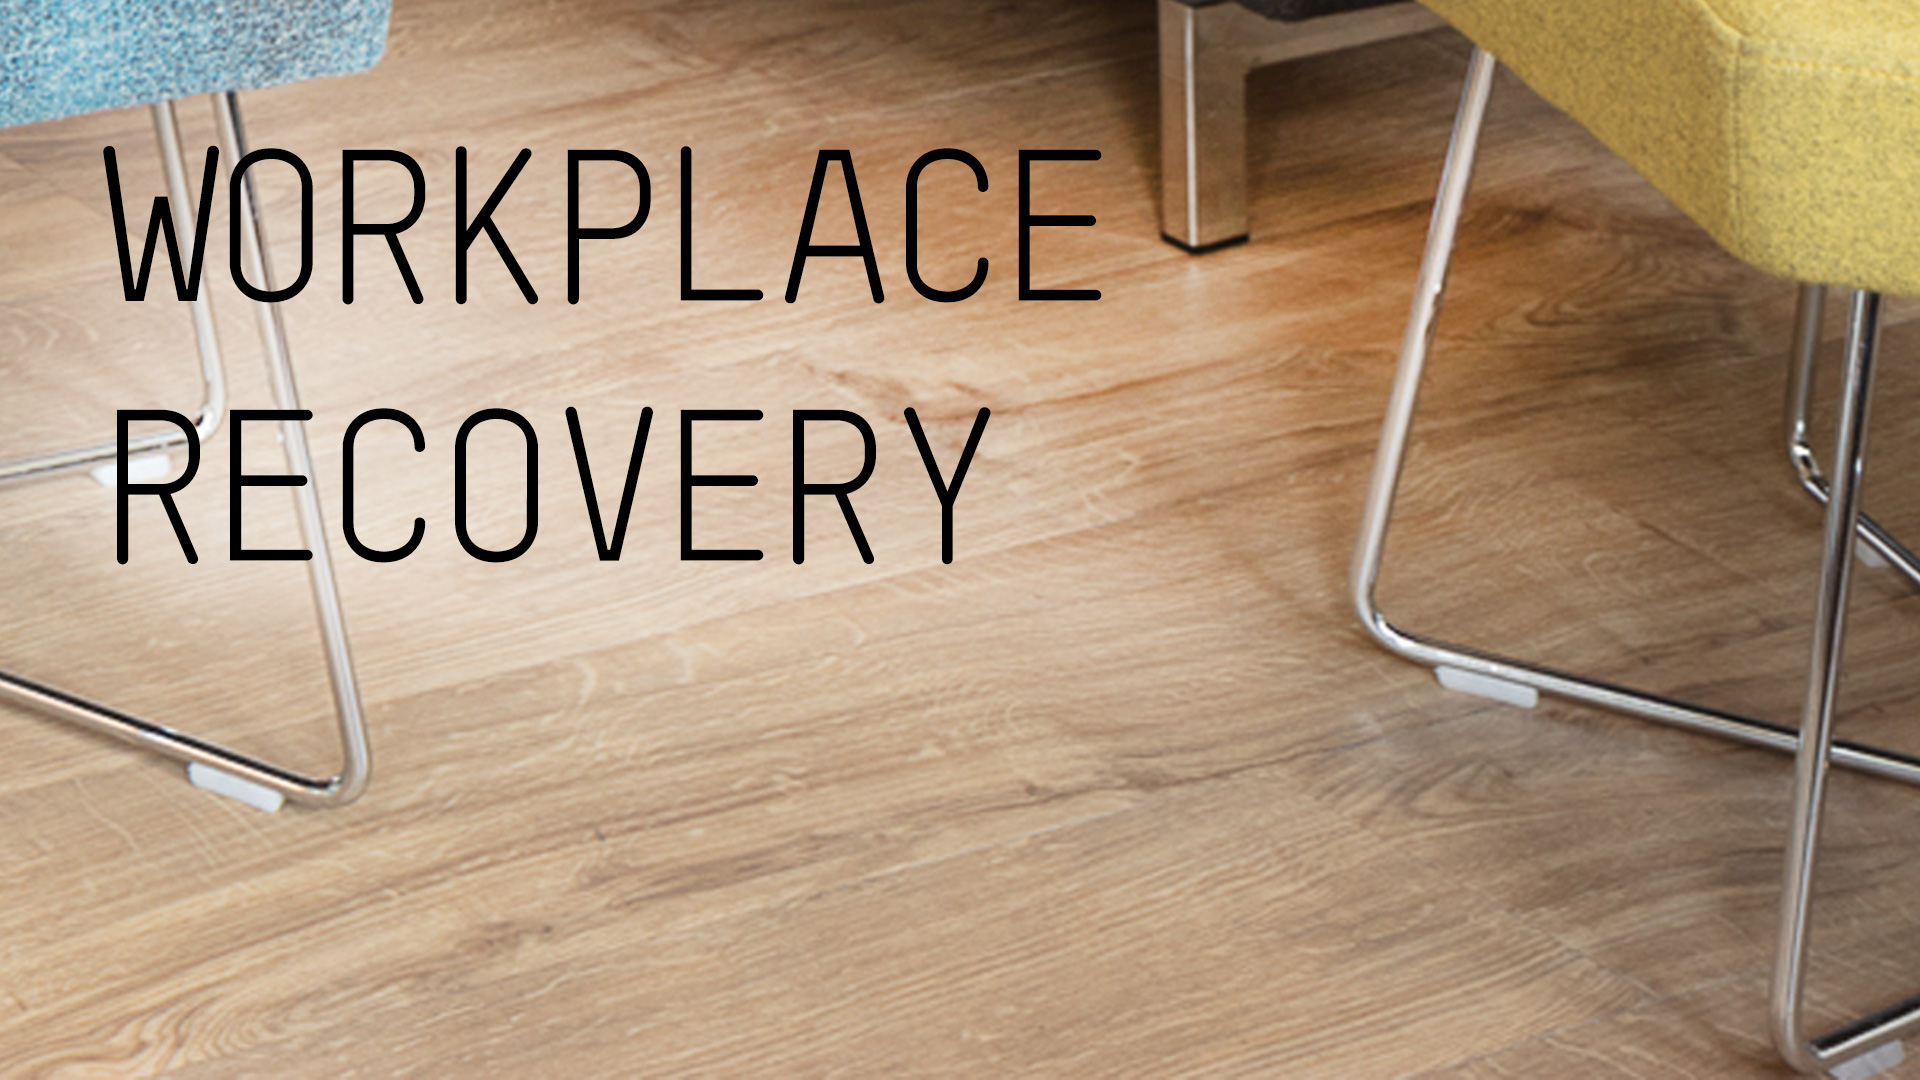 The recovery of the workplace